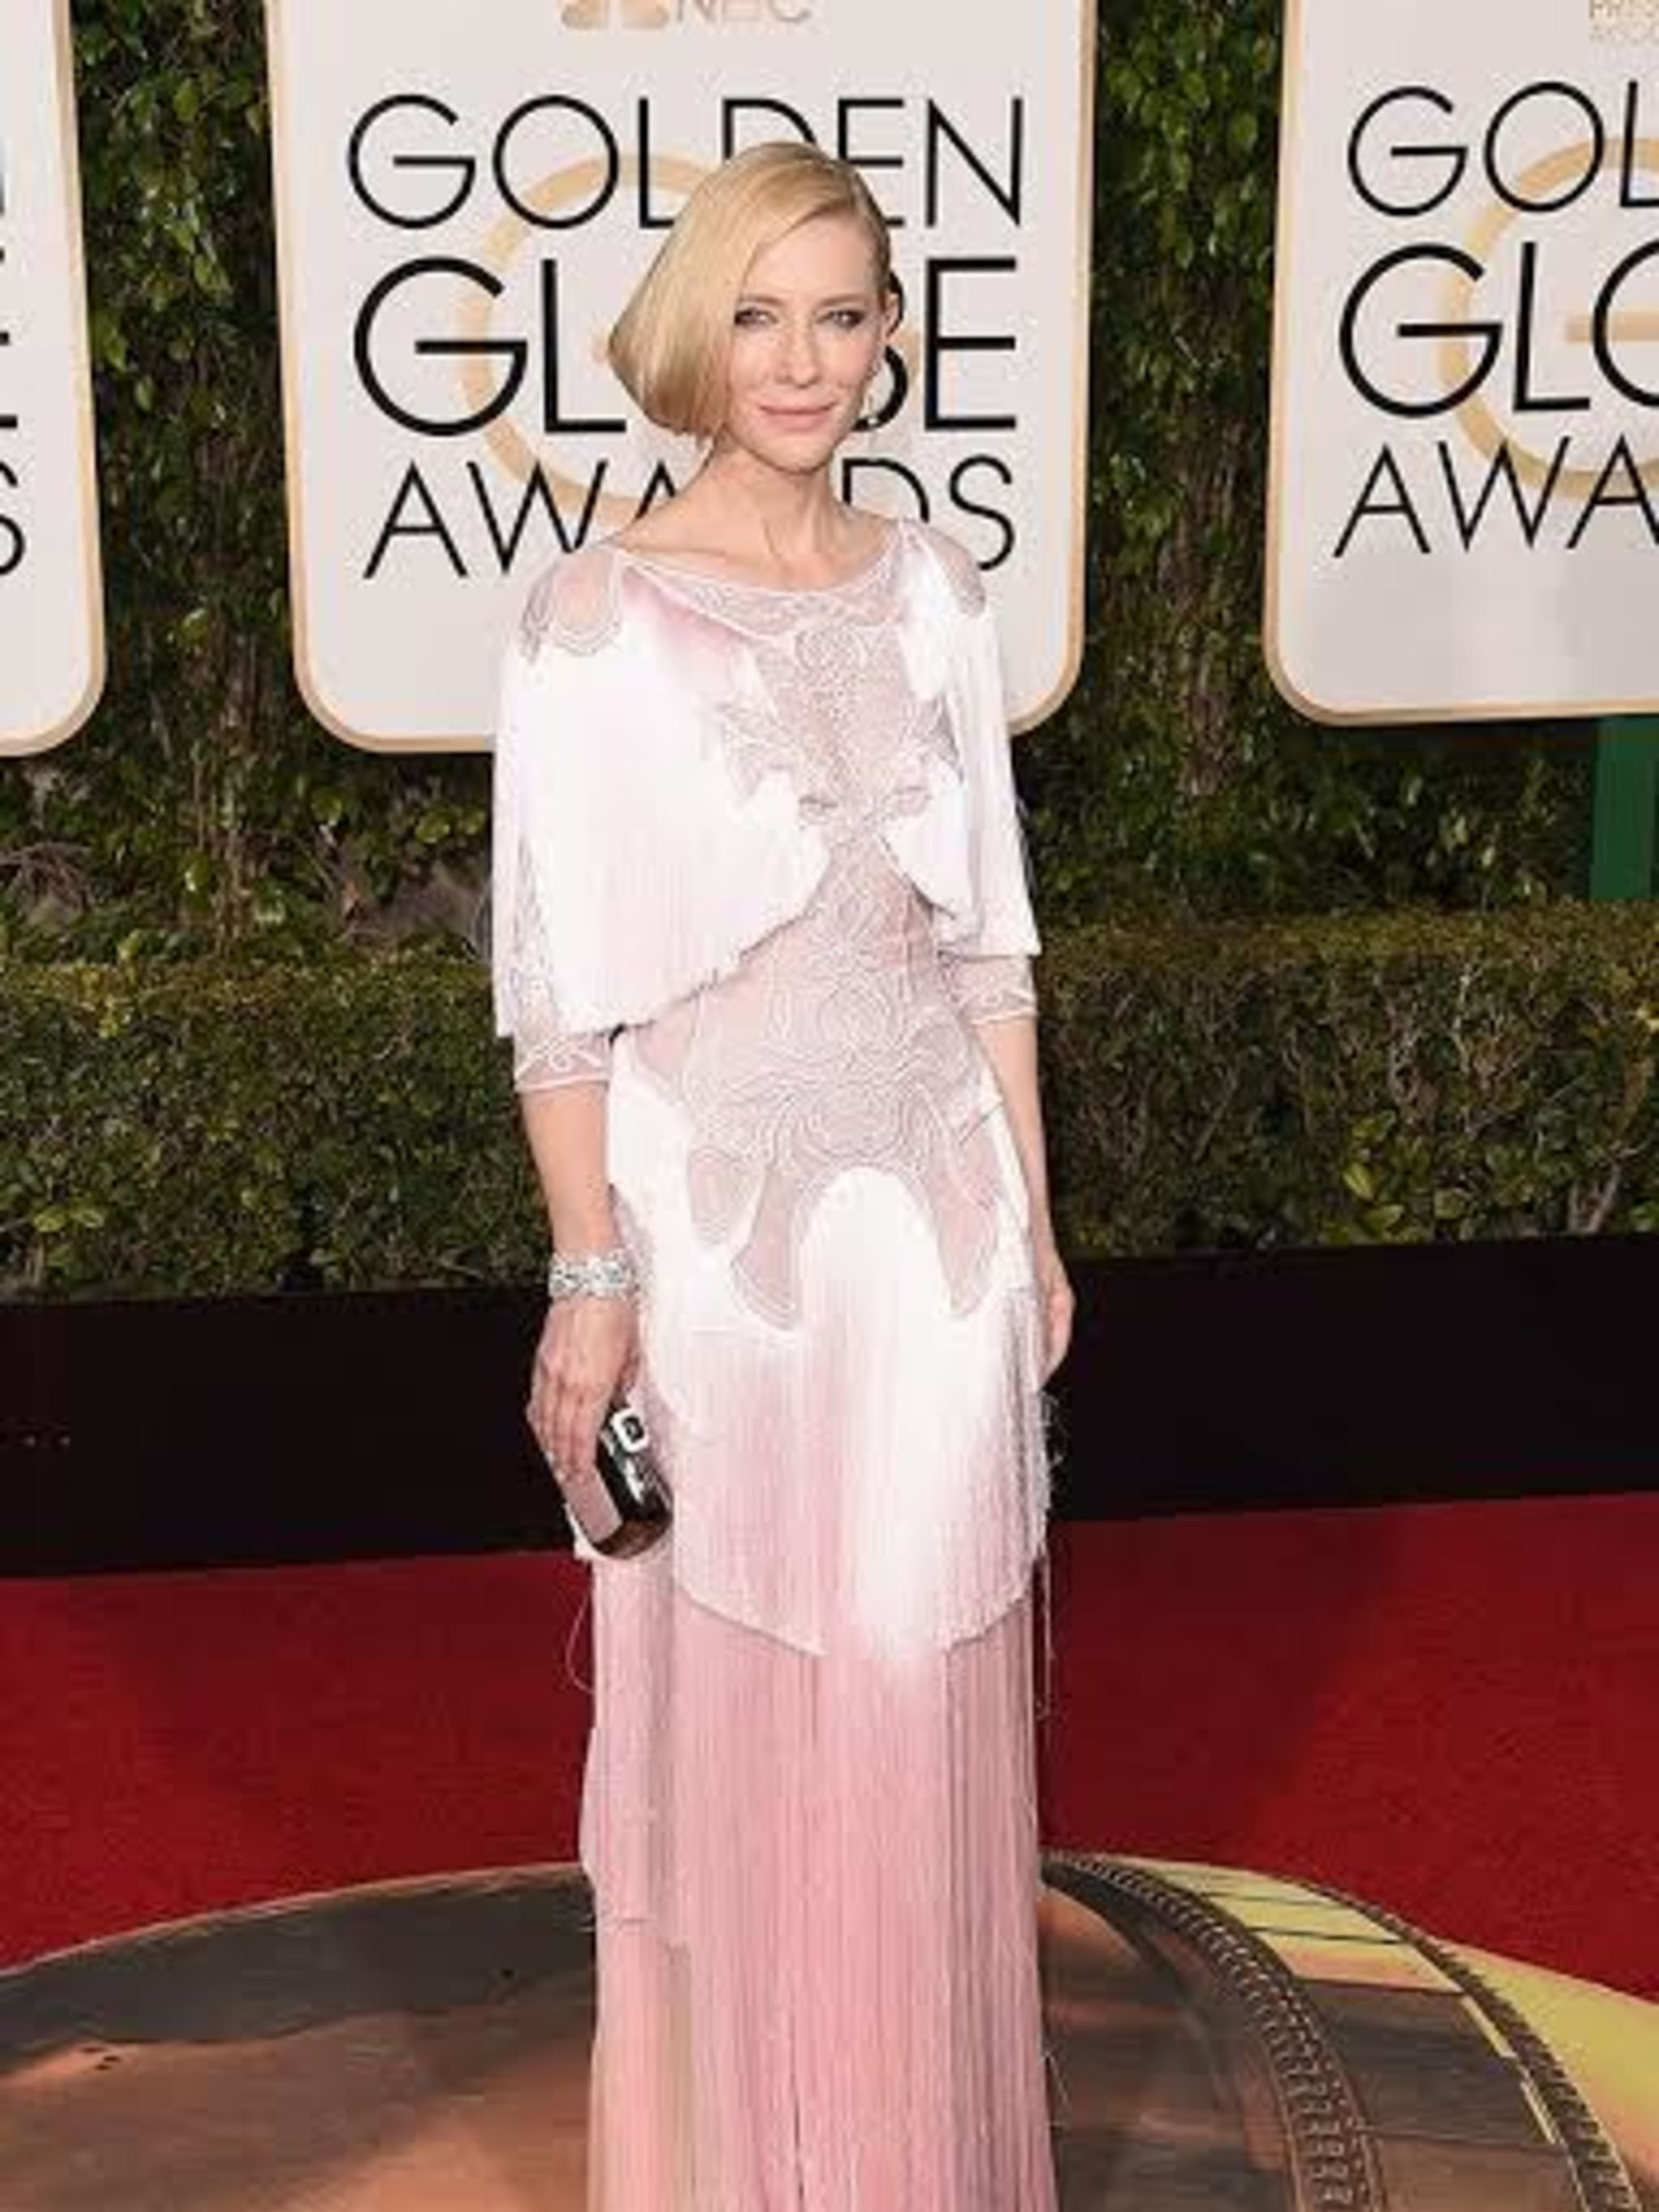 <p>Cate Blanchett in Givenchy Couture by Riccardo Tisci:This is nothing short of perfection. The vintage detailing, the antique ivory shade, theexquisite 'Tisci' signature fringing and embroidery. Cate oozes Golden Age Hollywoodglamour in this gown. <